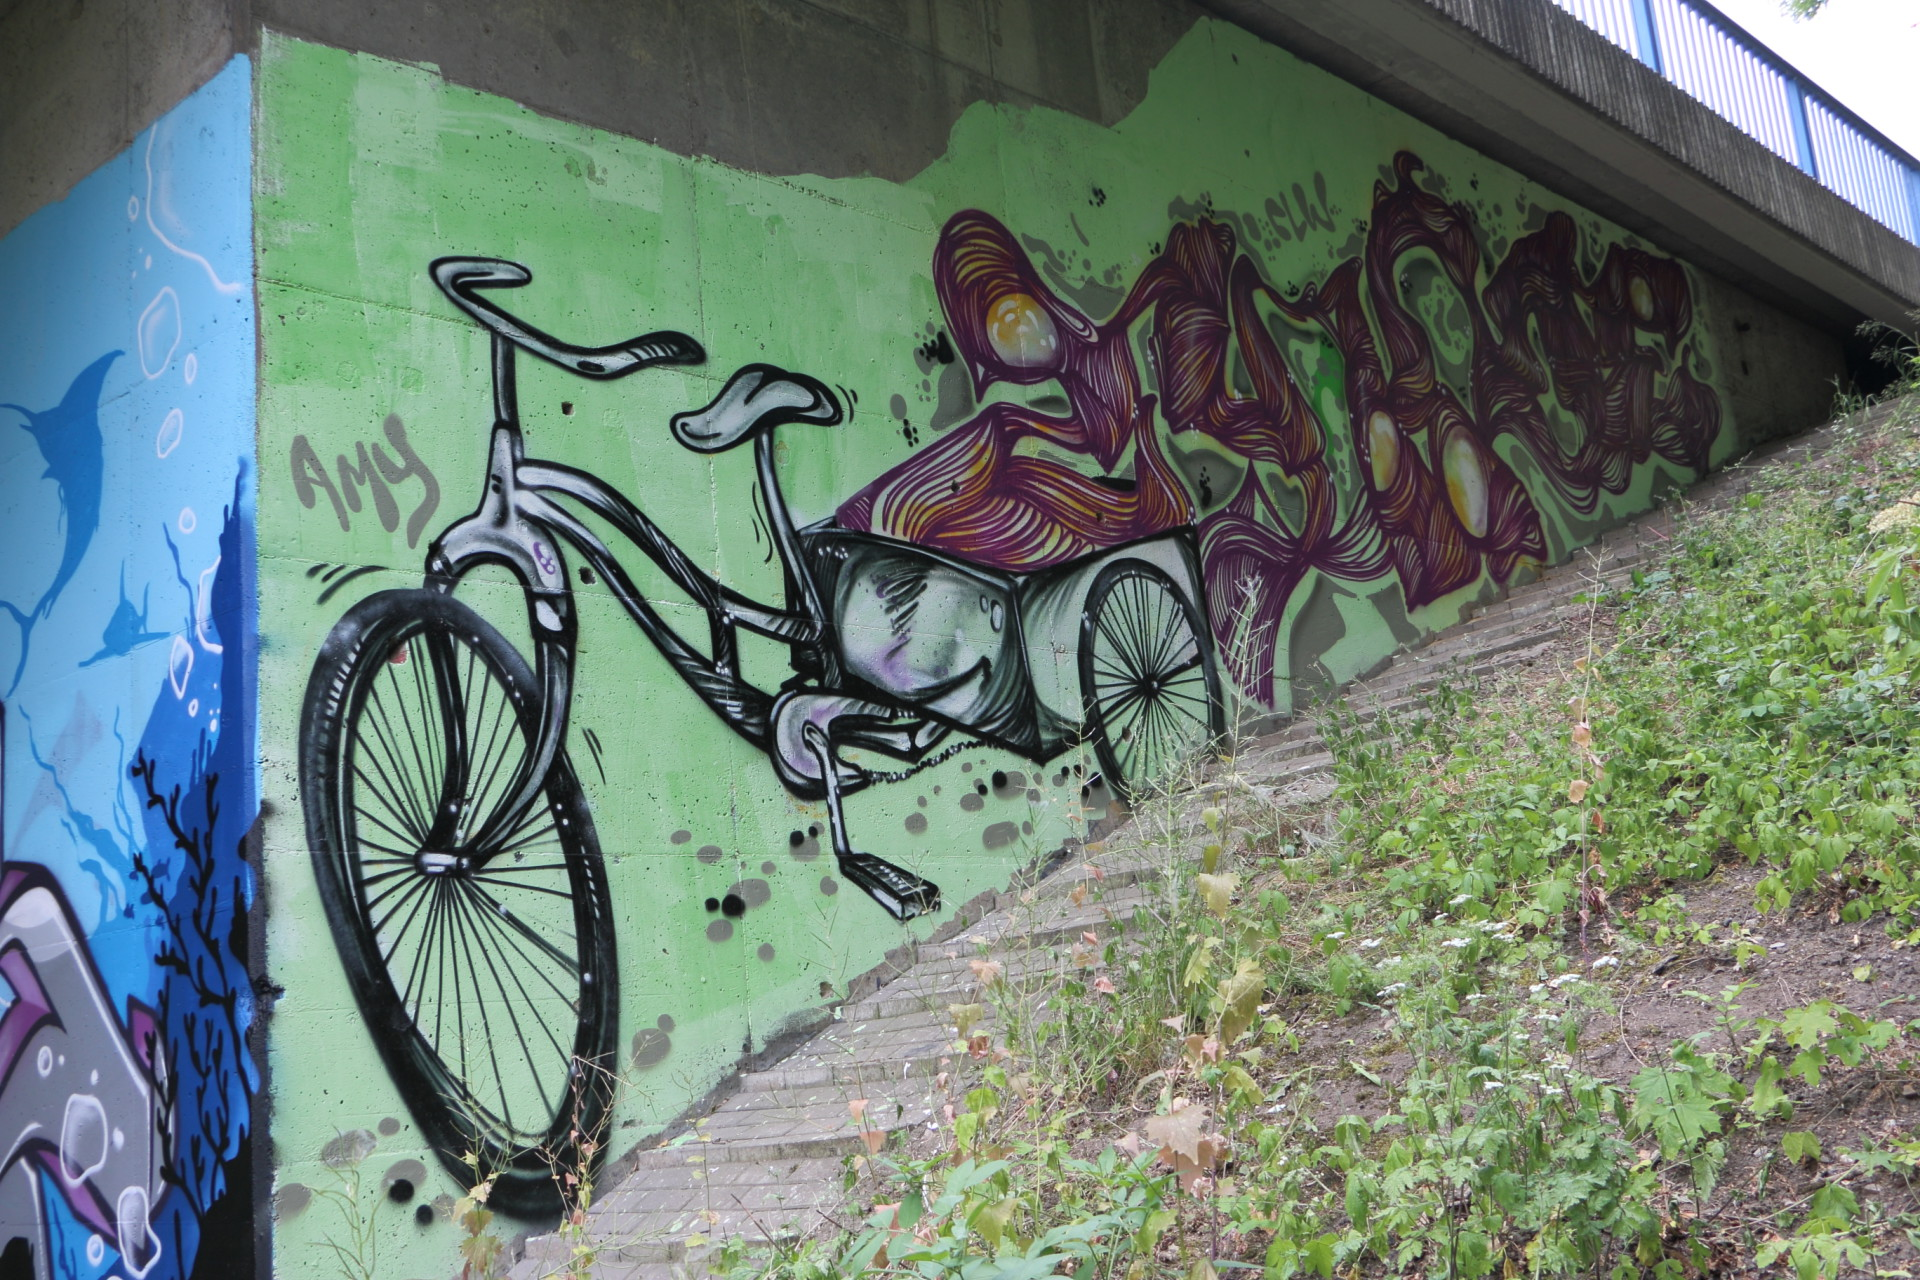 7-reSeite, Fahrrad, AMY, CLW_IMG_9052